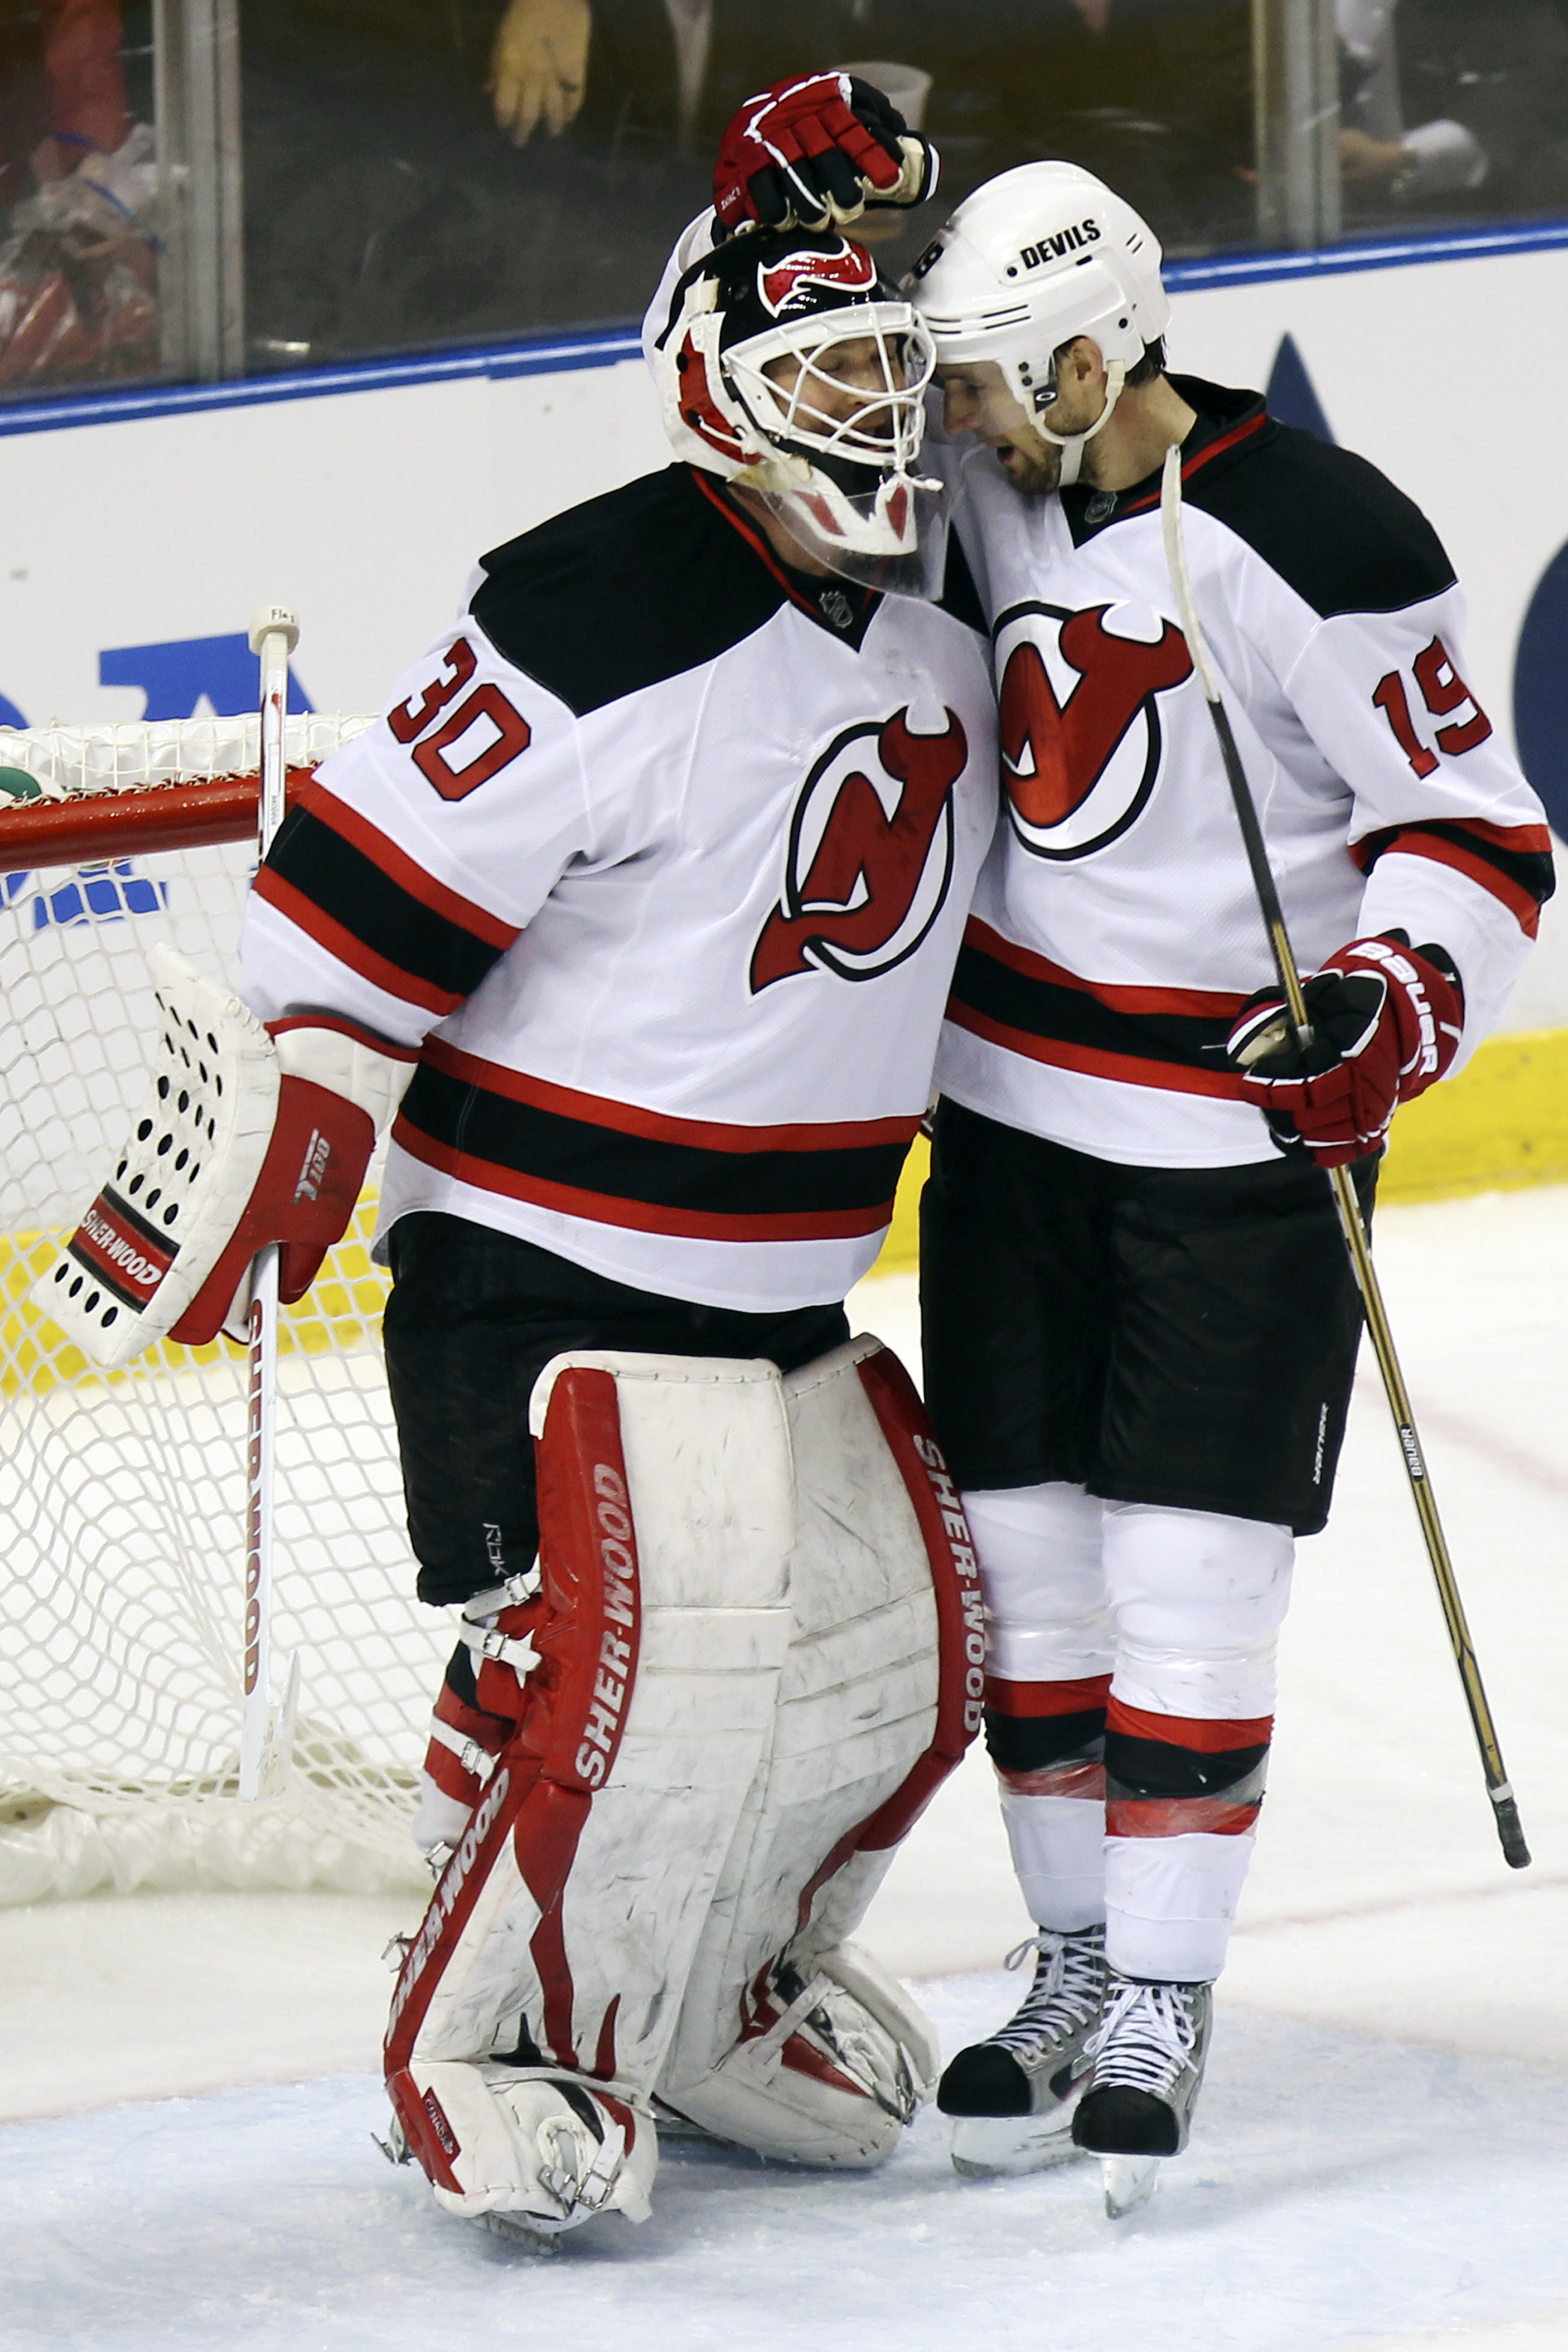 Brodeur Wins No 100 Devils Top Panthers The Spokesman Review